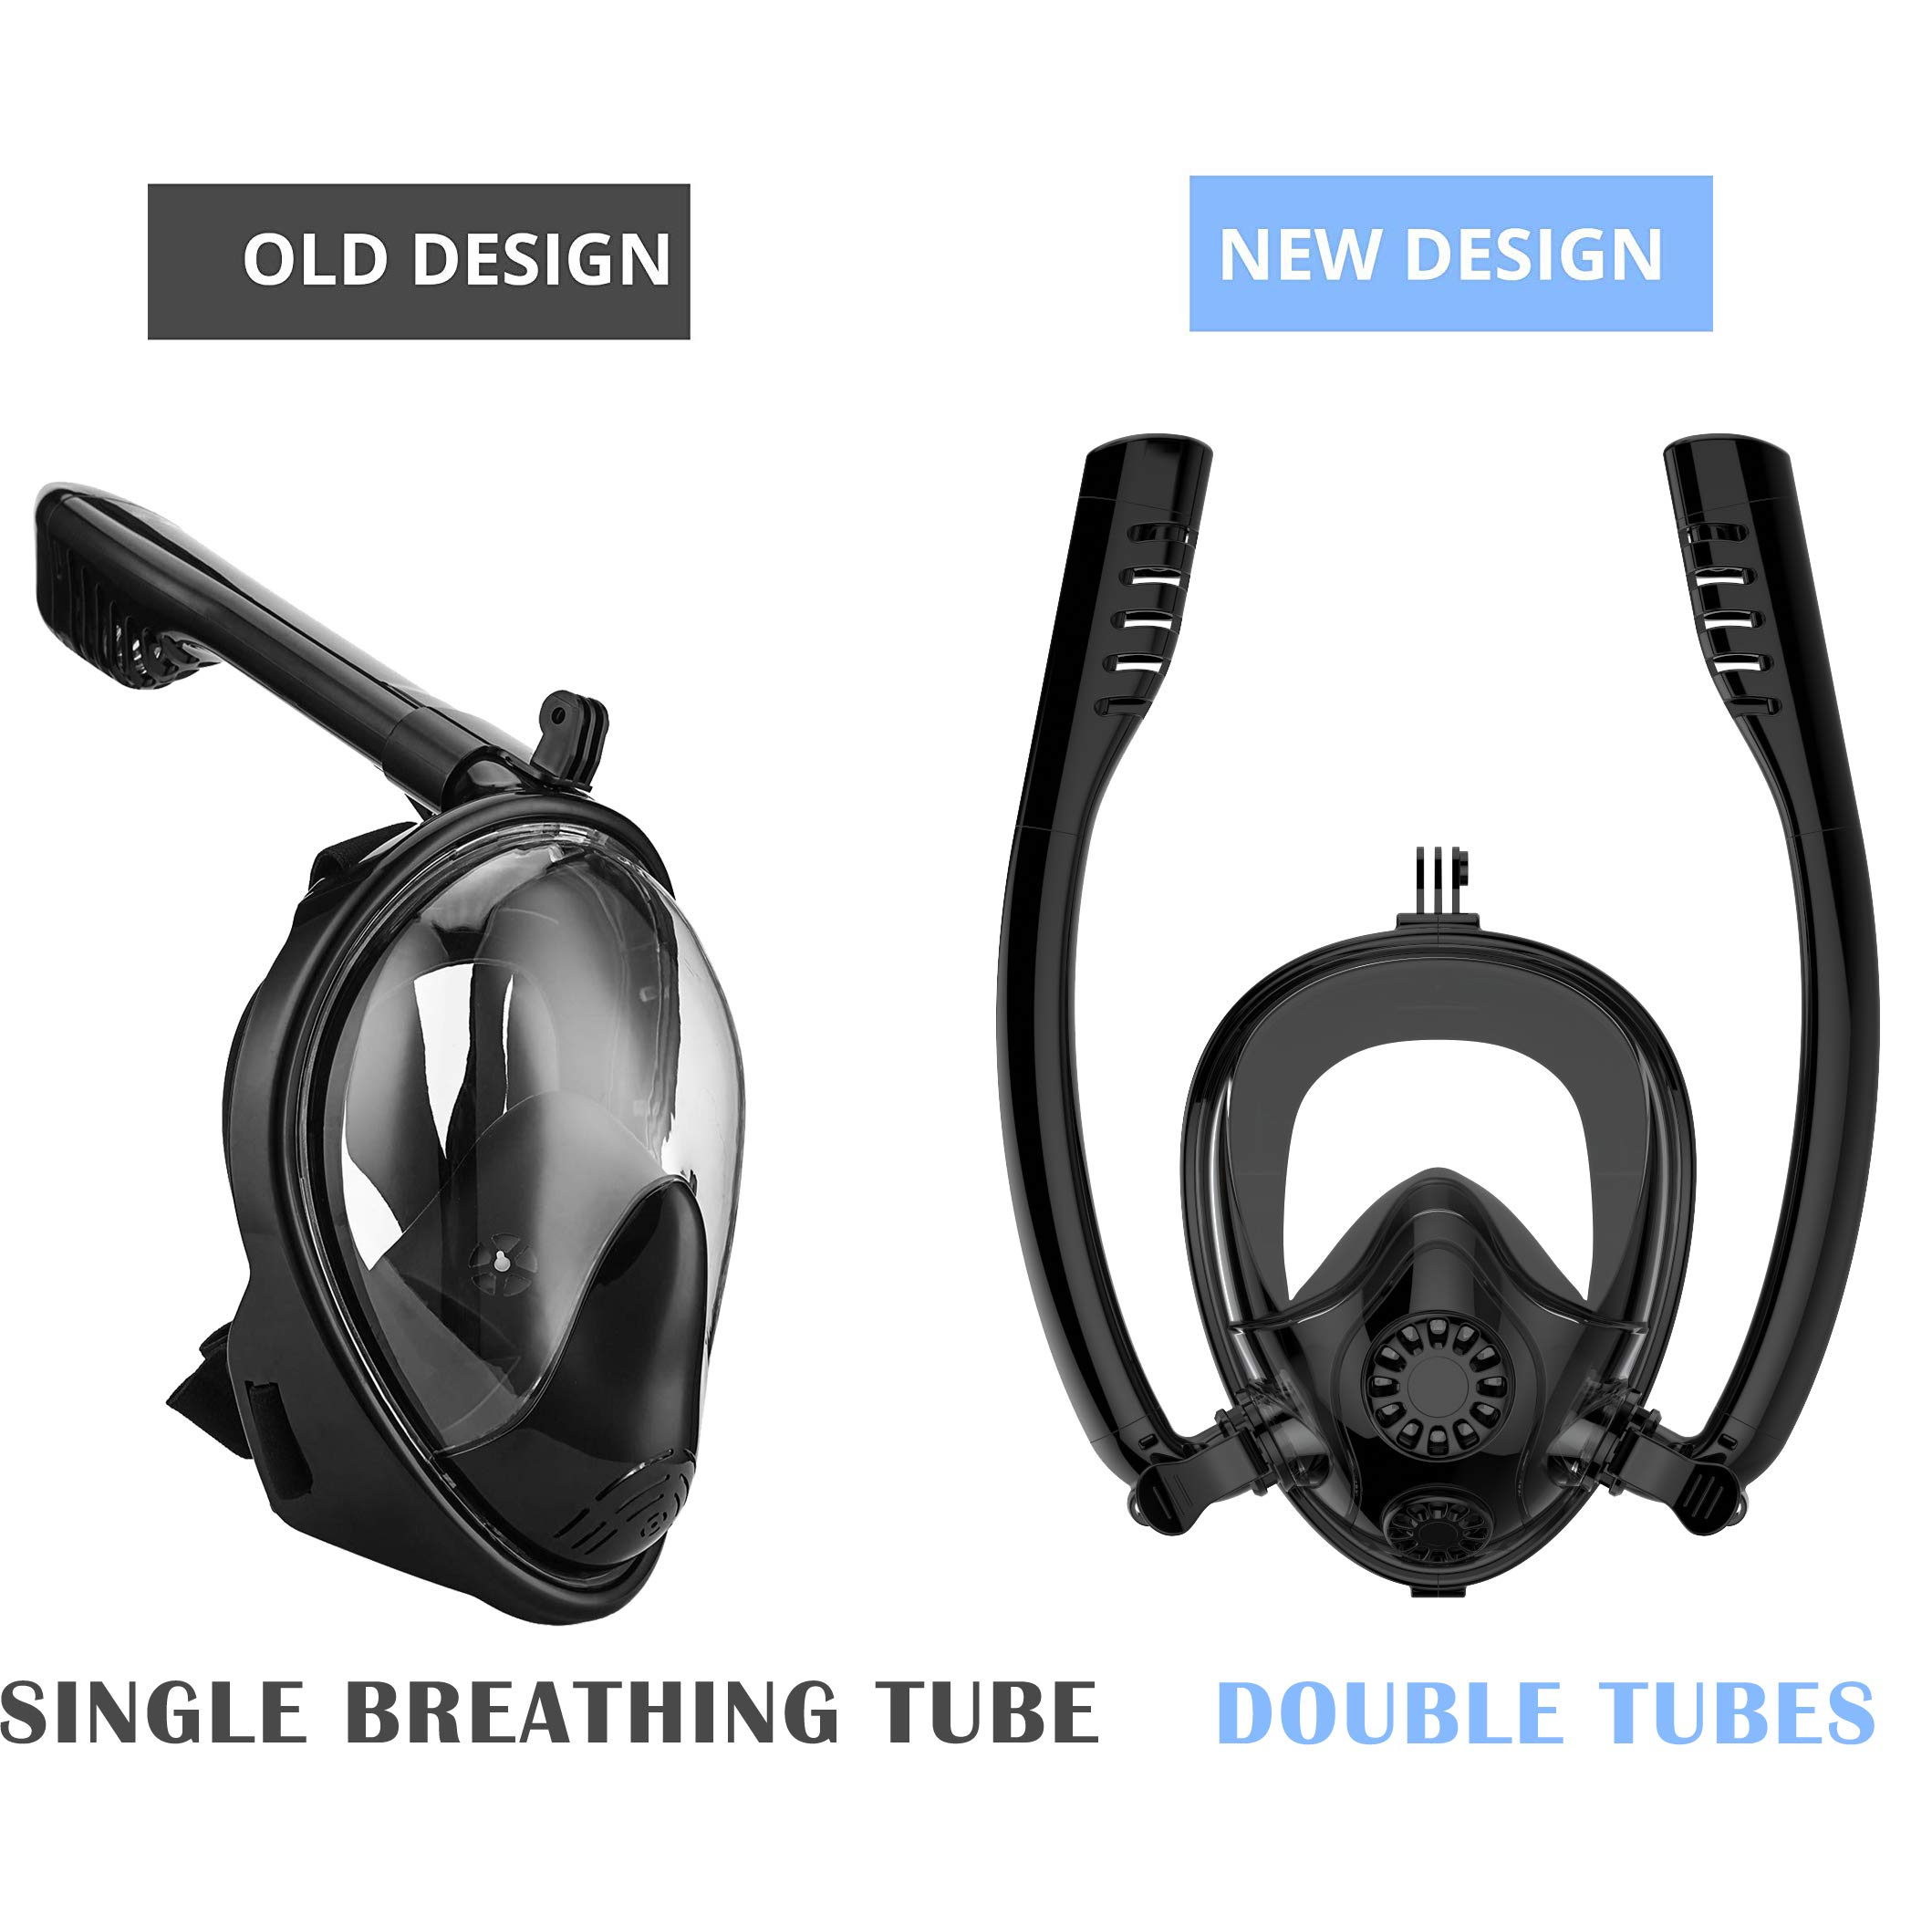 Full Face Snorkel Mask, HJKB K2 Backstroke Swiming Snorkeling Mask with Double Tubes and 180° Panoramic Viewing, Zero Fog and Anti Leak Guarantee with Camera Mount for Adult (Black, Large) by Jahuite (Image #3)